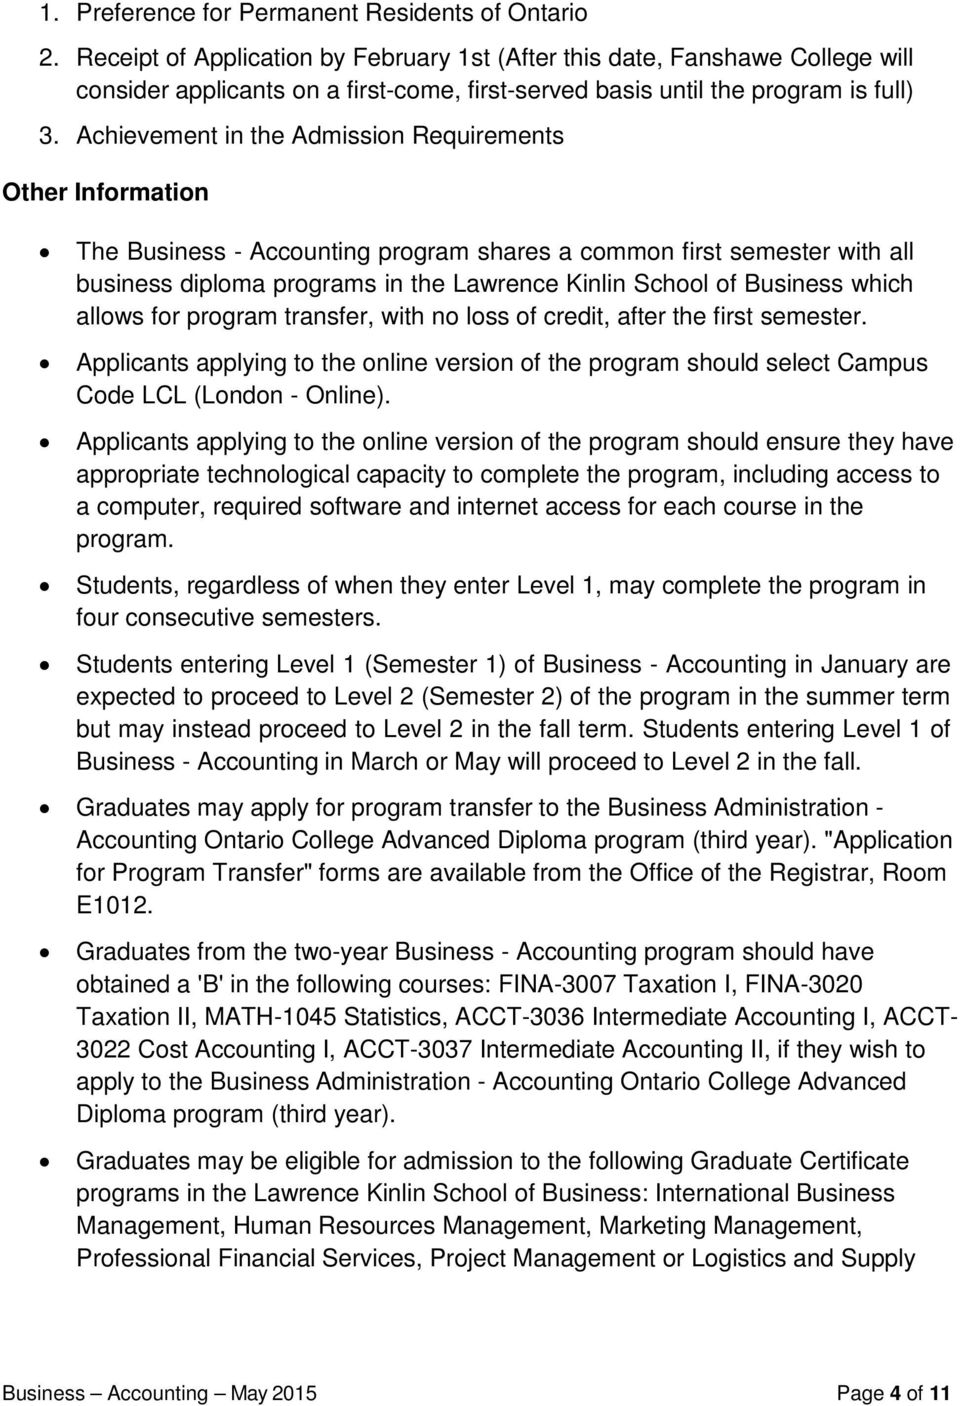 Achievement in the Admission Requirements Other Information The Business - Accounting program shares a common first semester with all business diploma programs in the Lawrence Kinlin School of